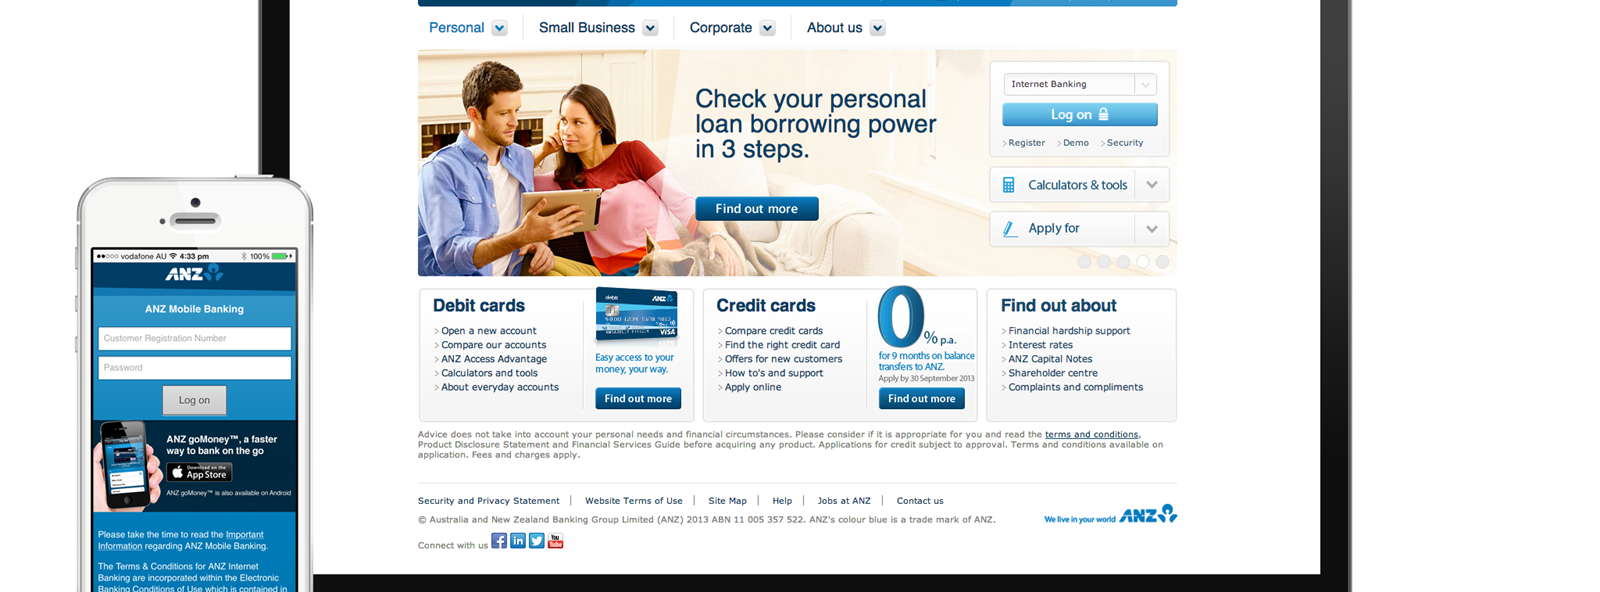 Anz bank png internet banking. Sending transferring money to